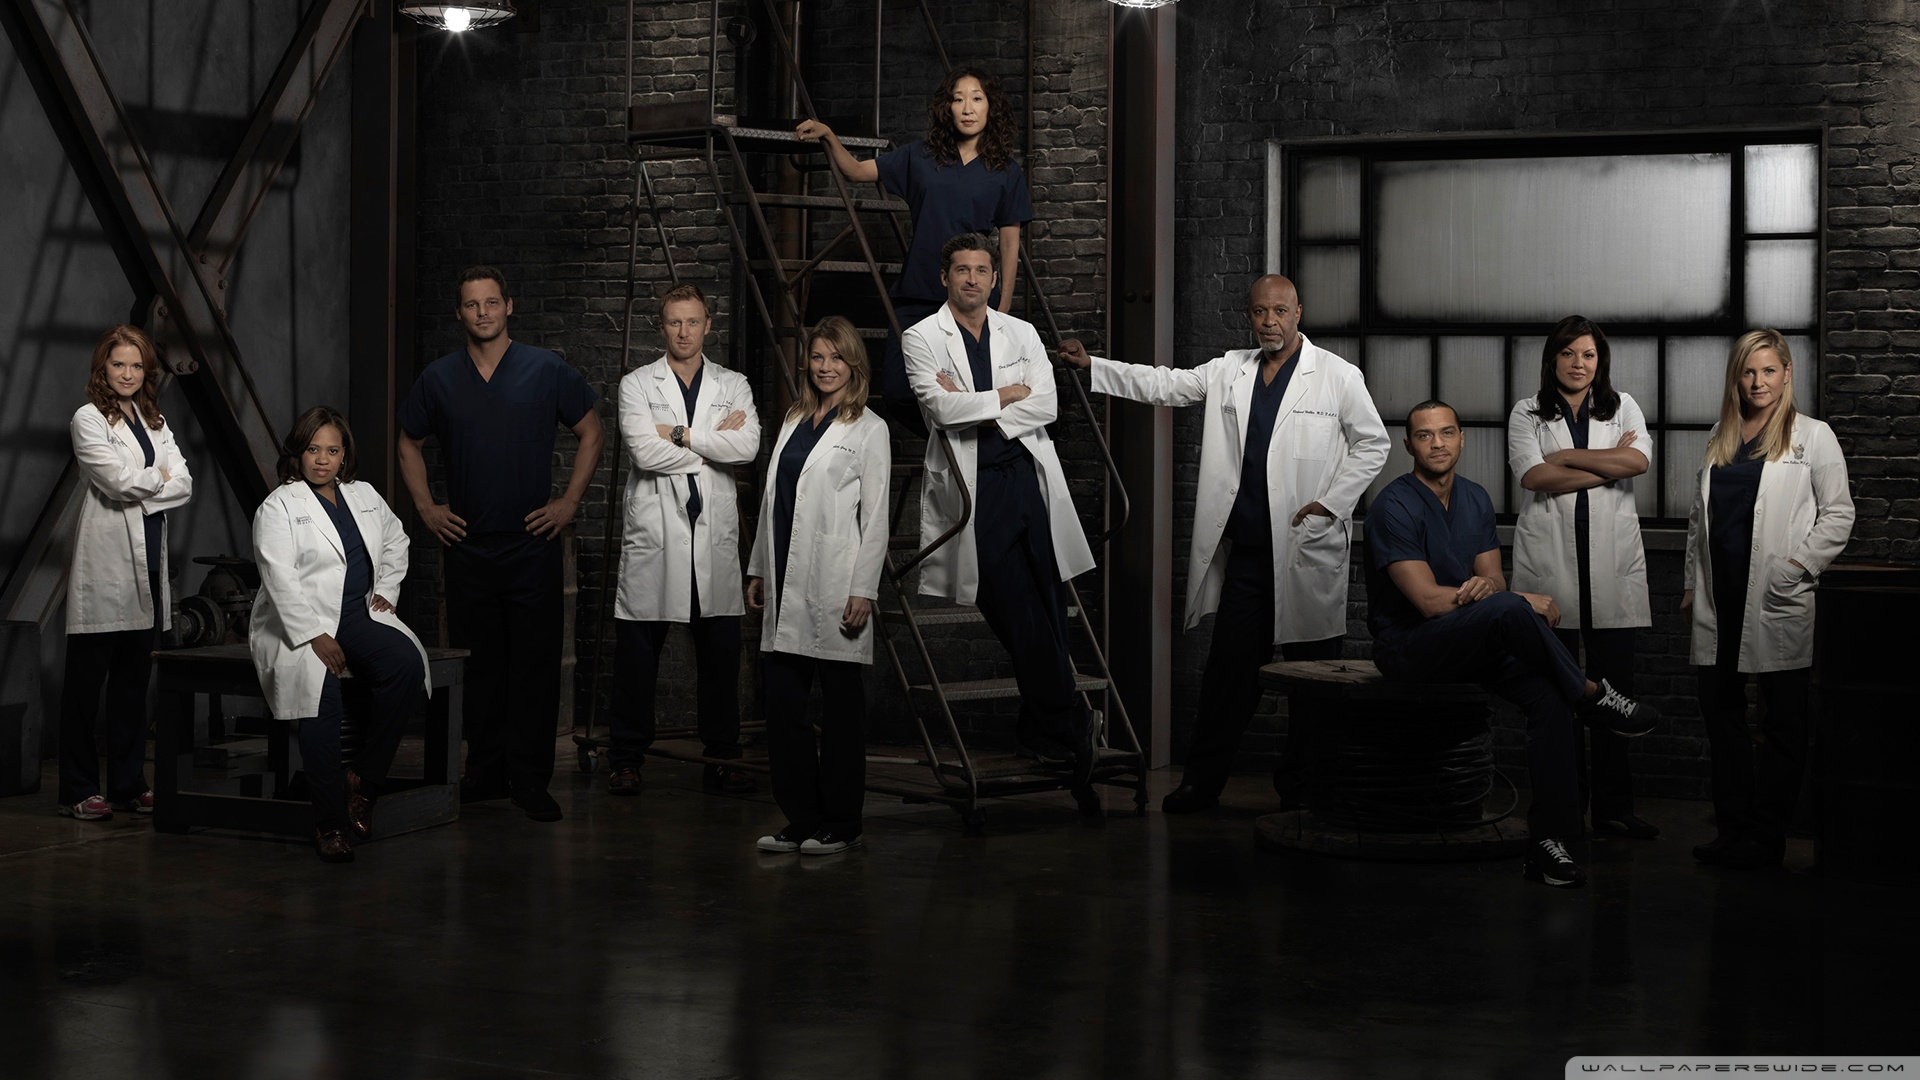 Greys Anatomy Wallpaper 2   1920 X 1080 stmednet 1920x1080